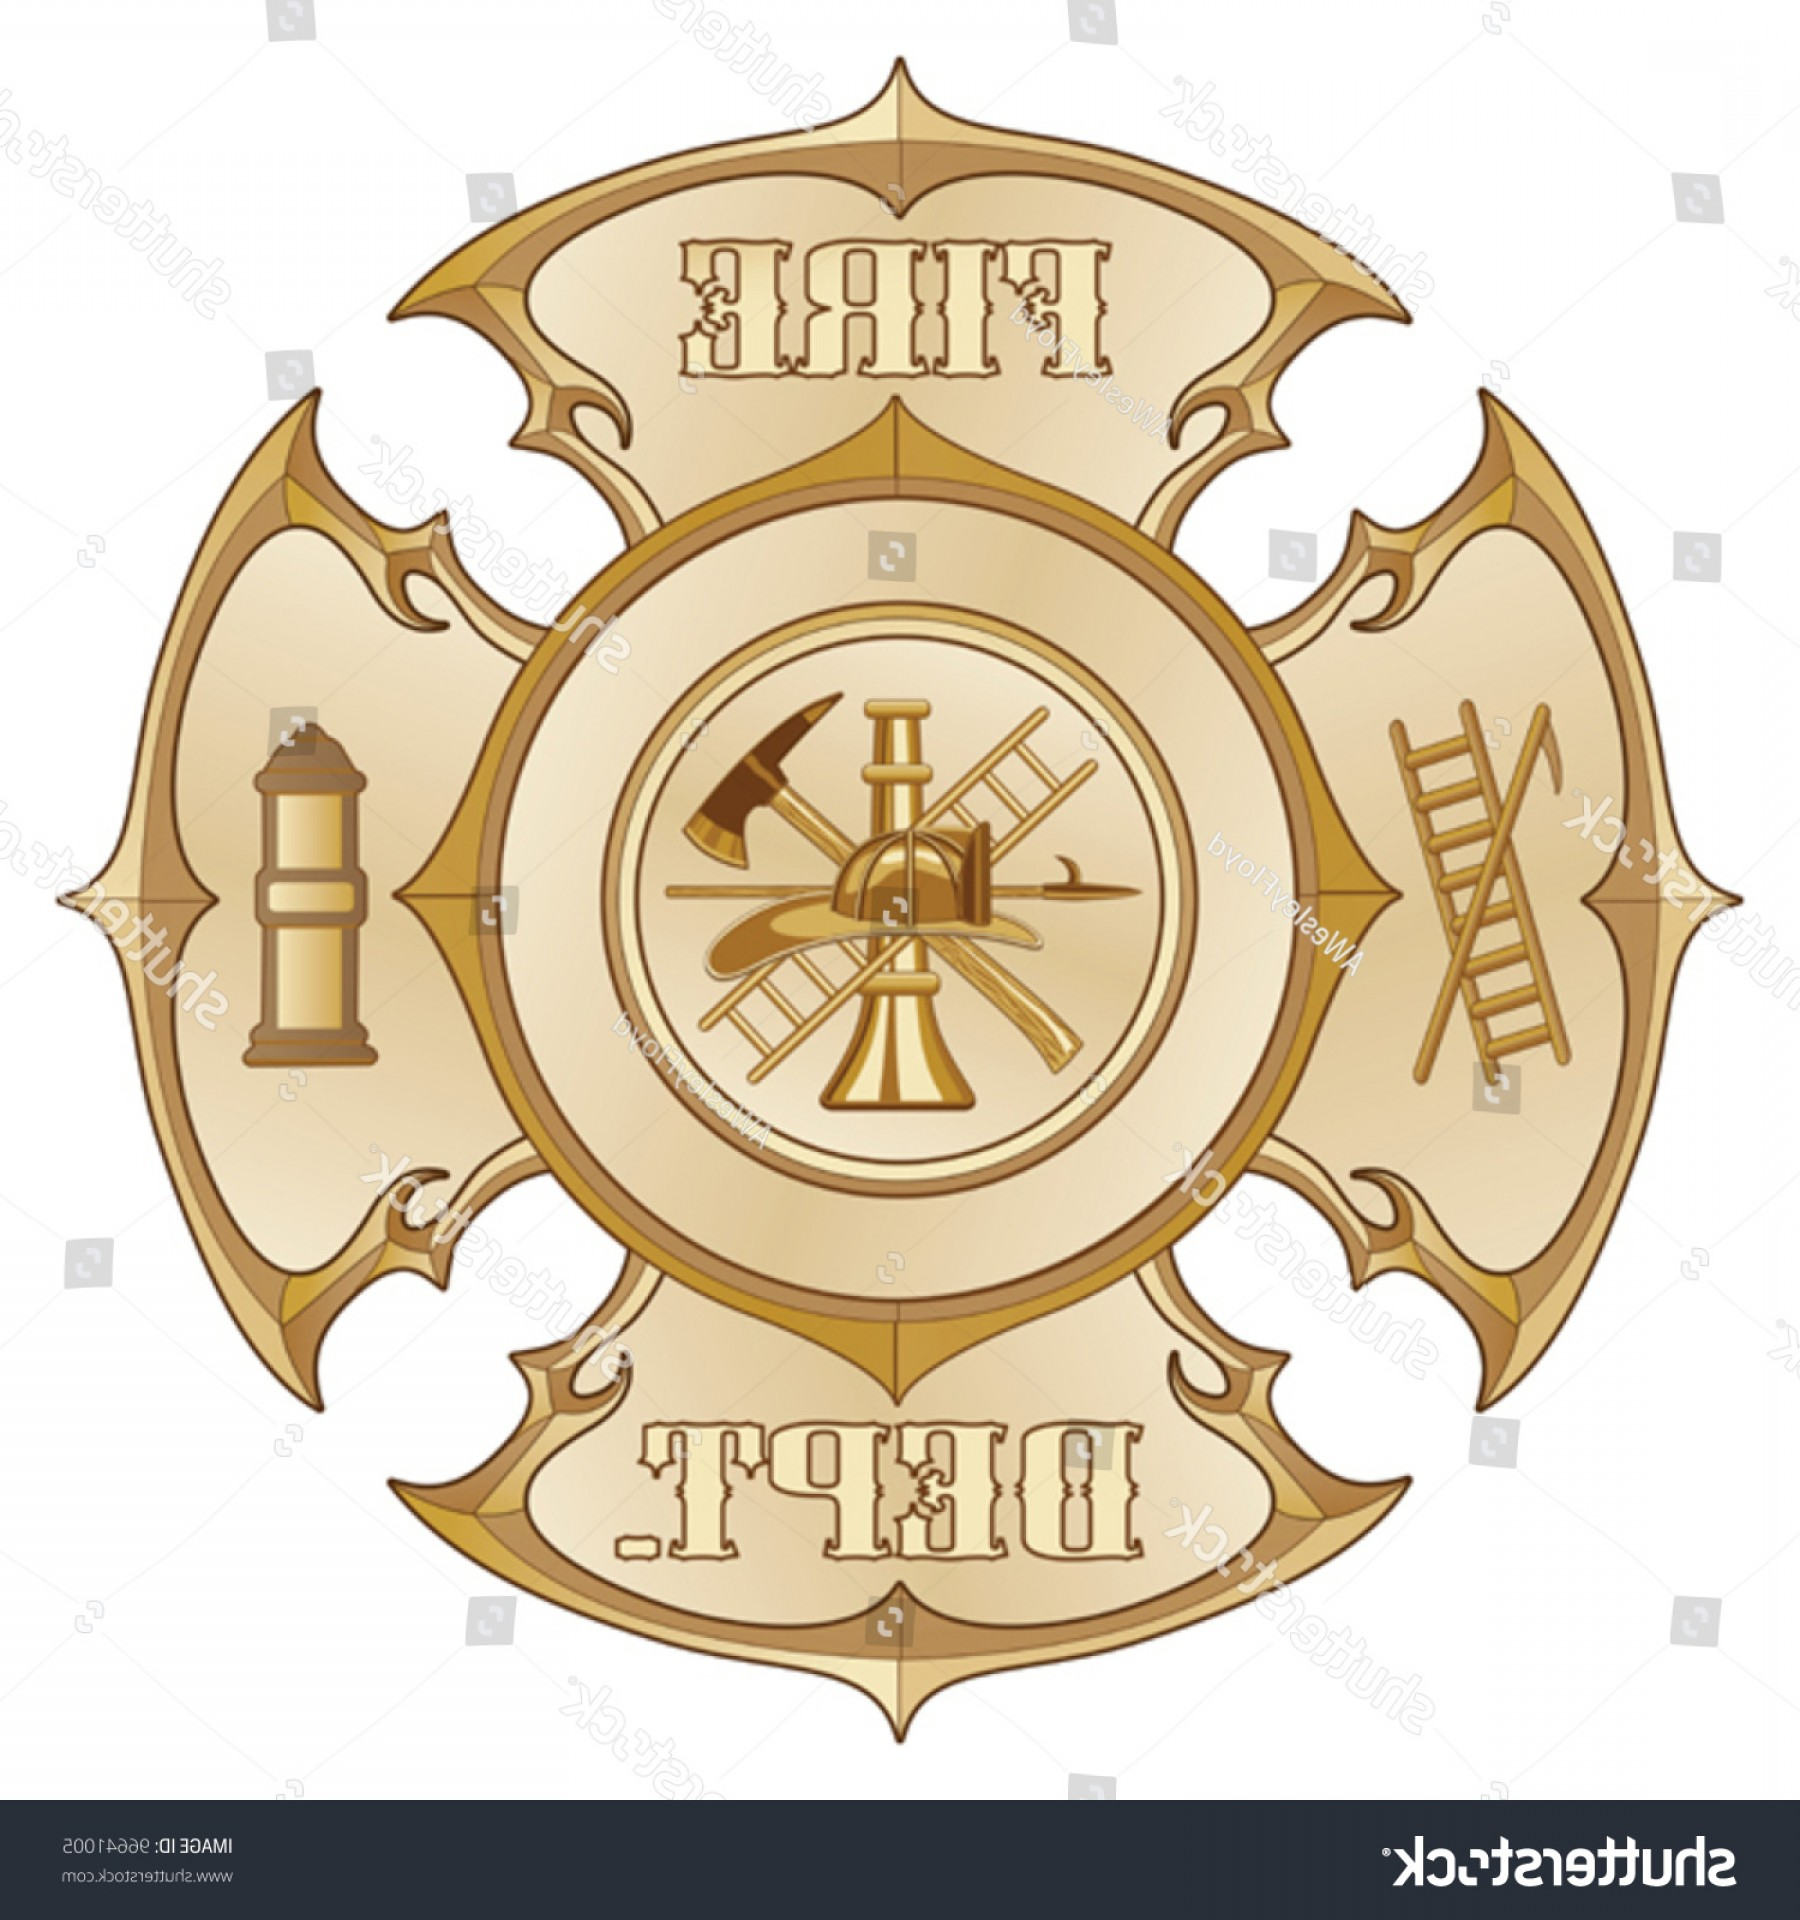 Fire Maltese Vector: Fire Department Cross Vintage Gold Illustration